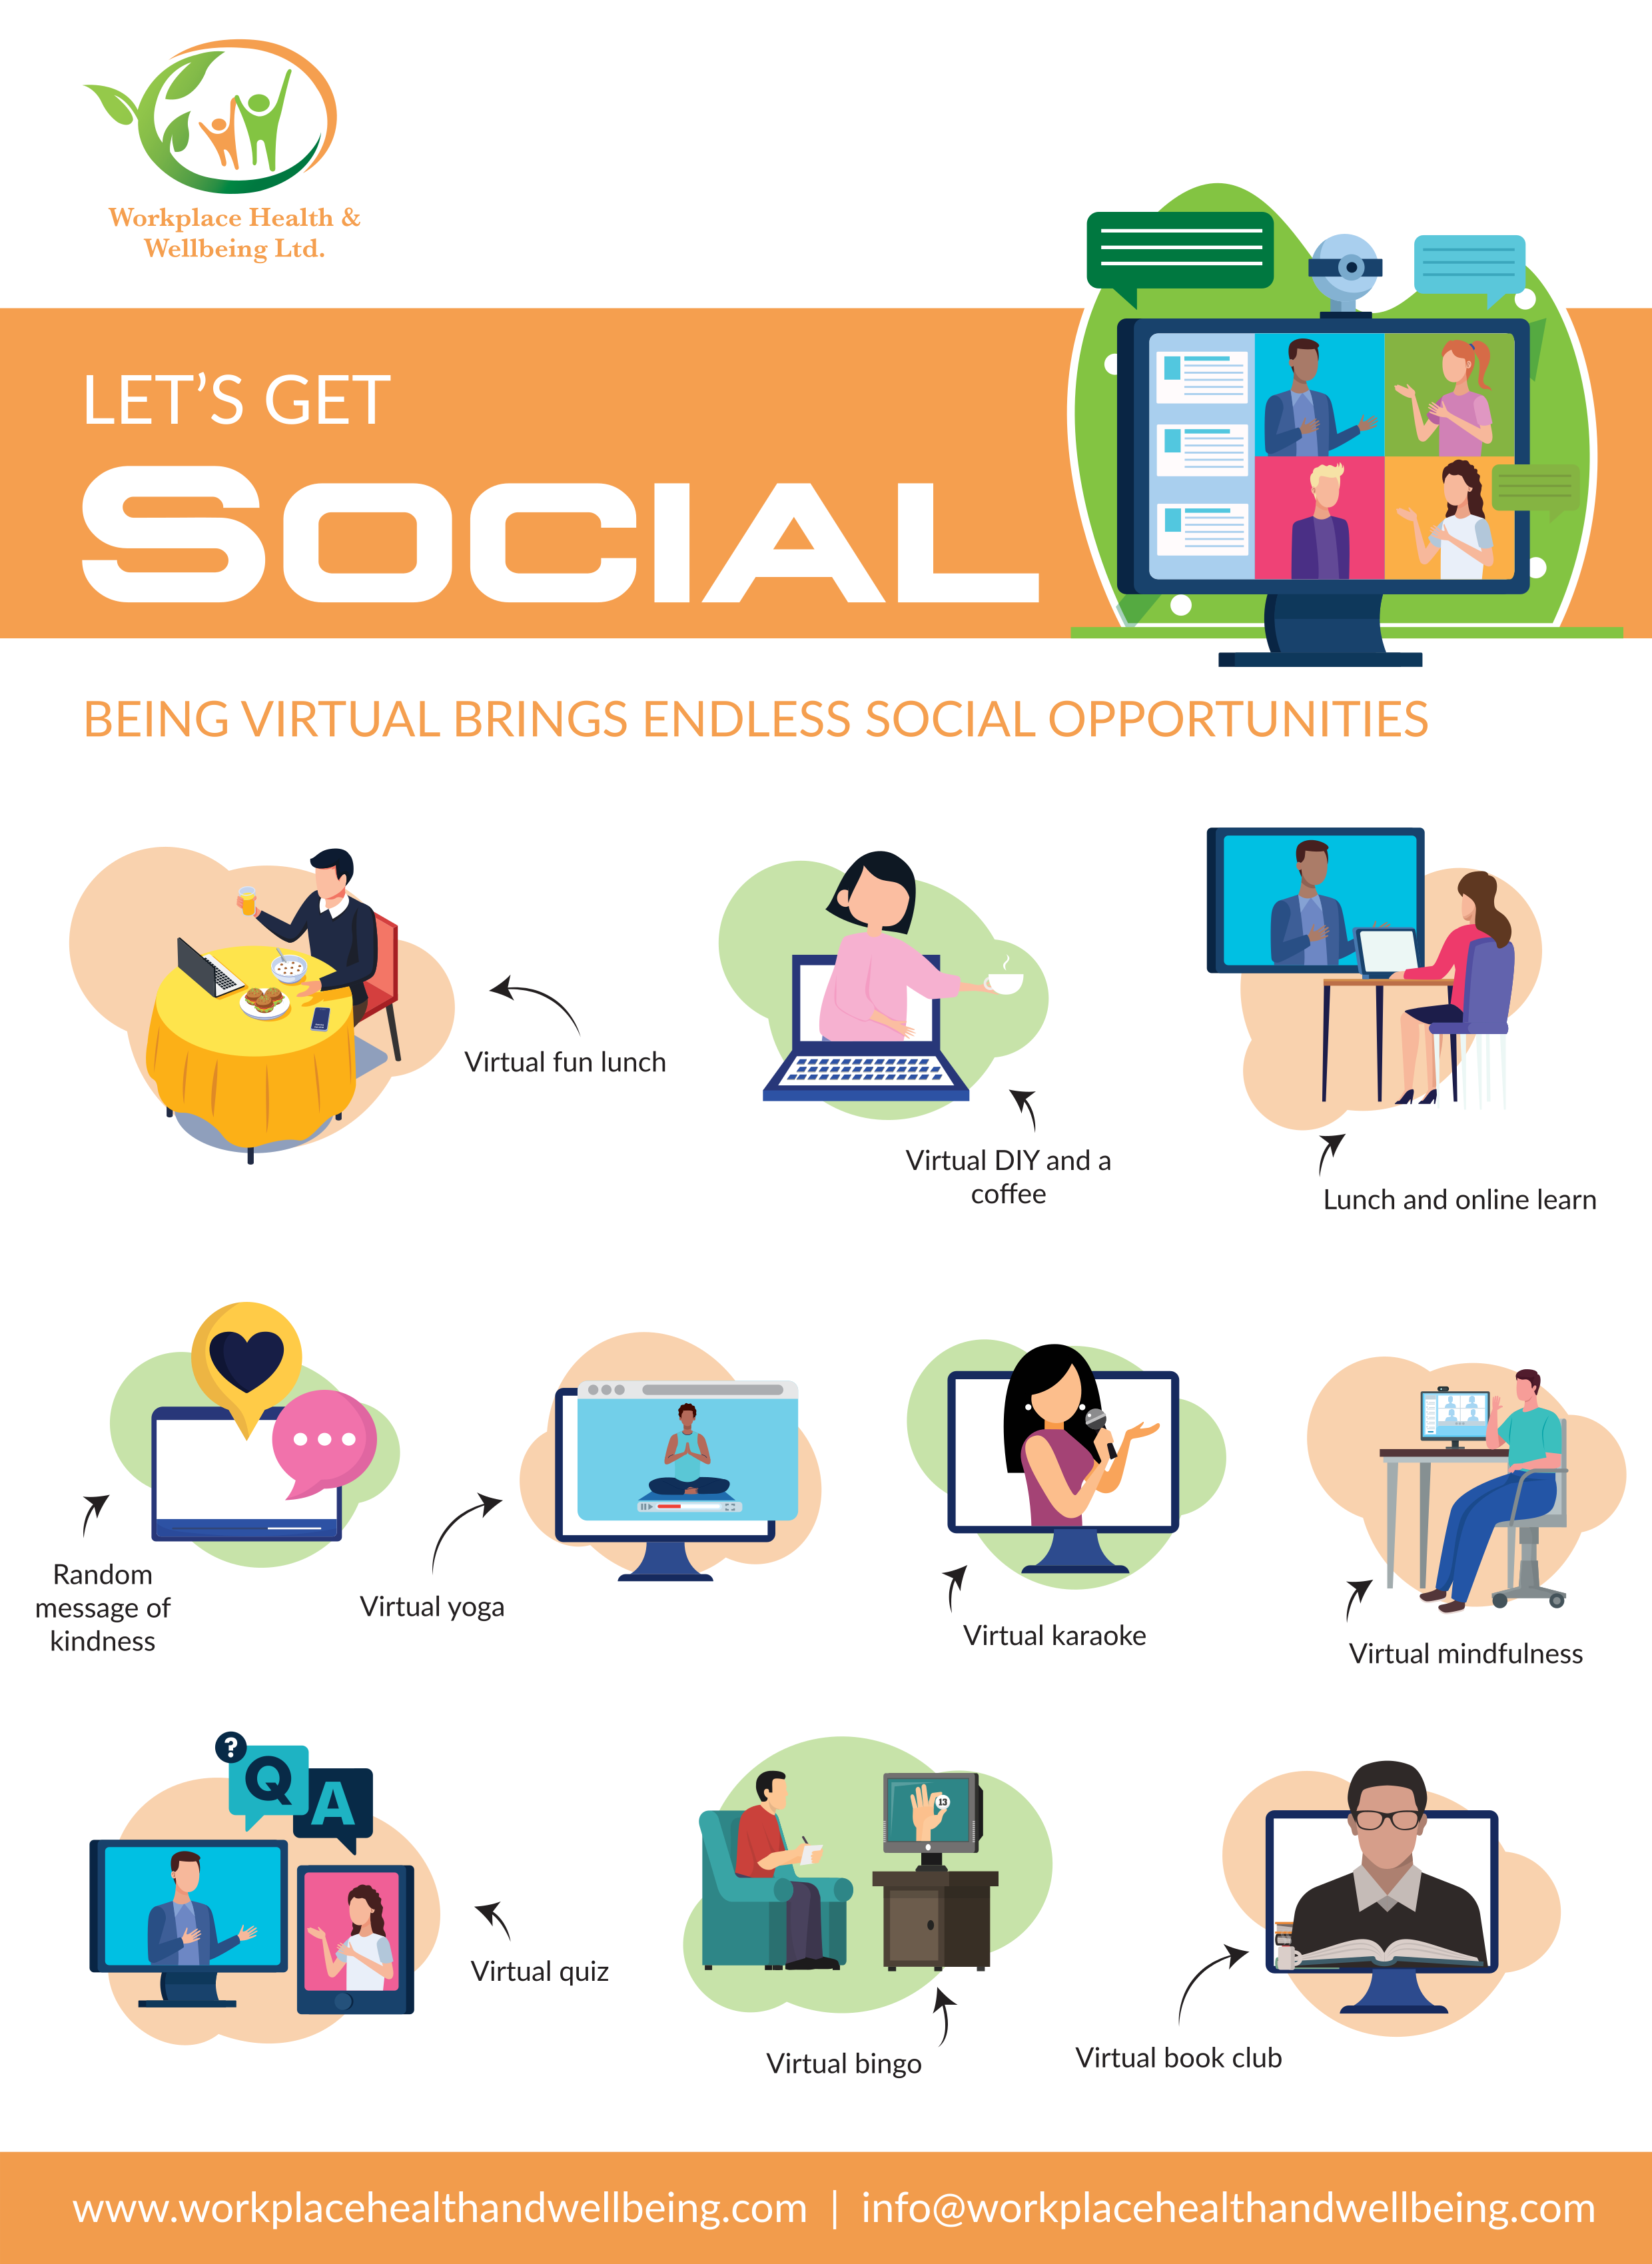 an infographic showing different ideas on how to socialise online